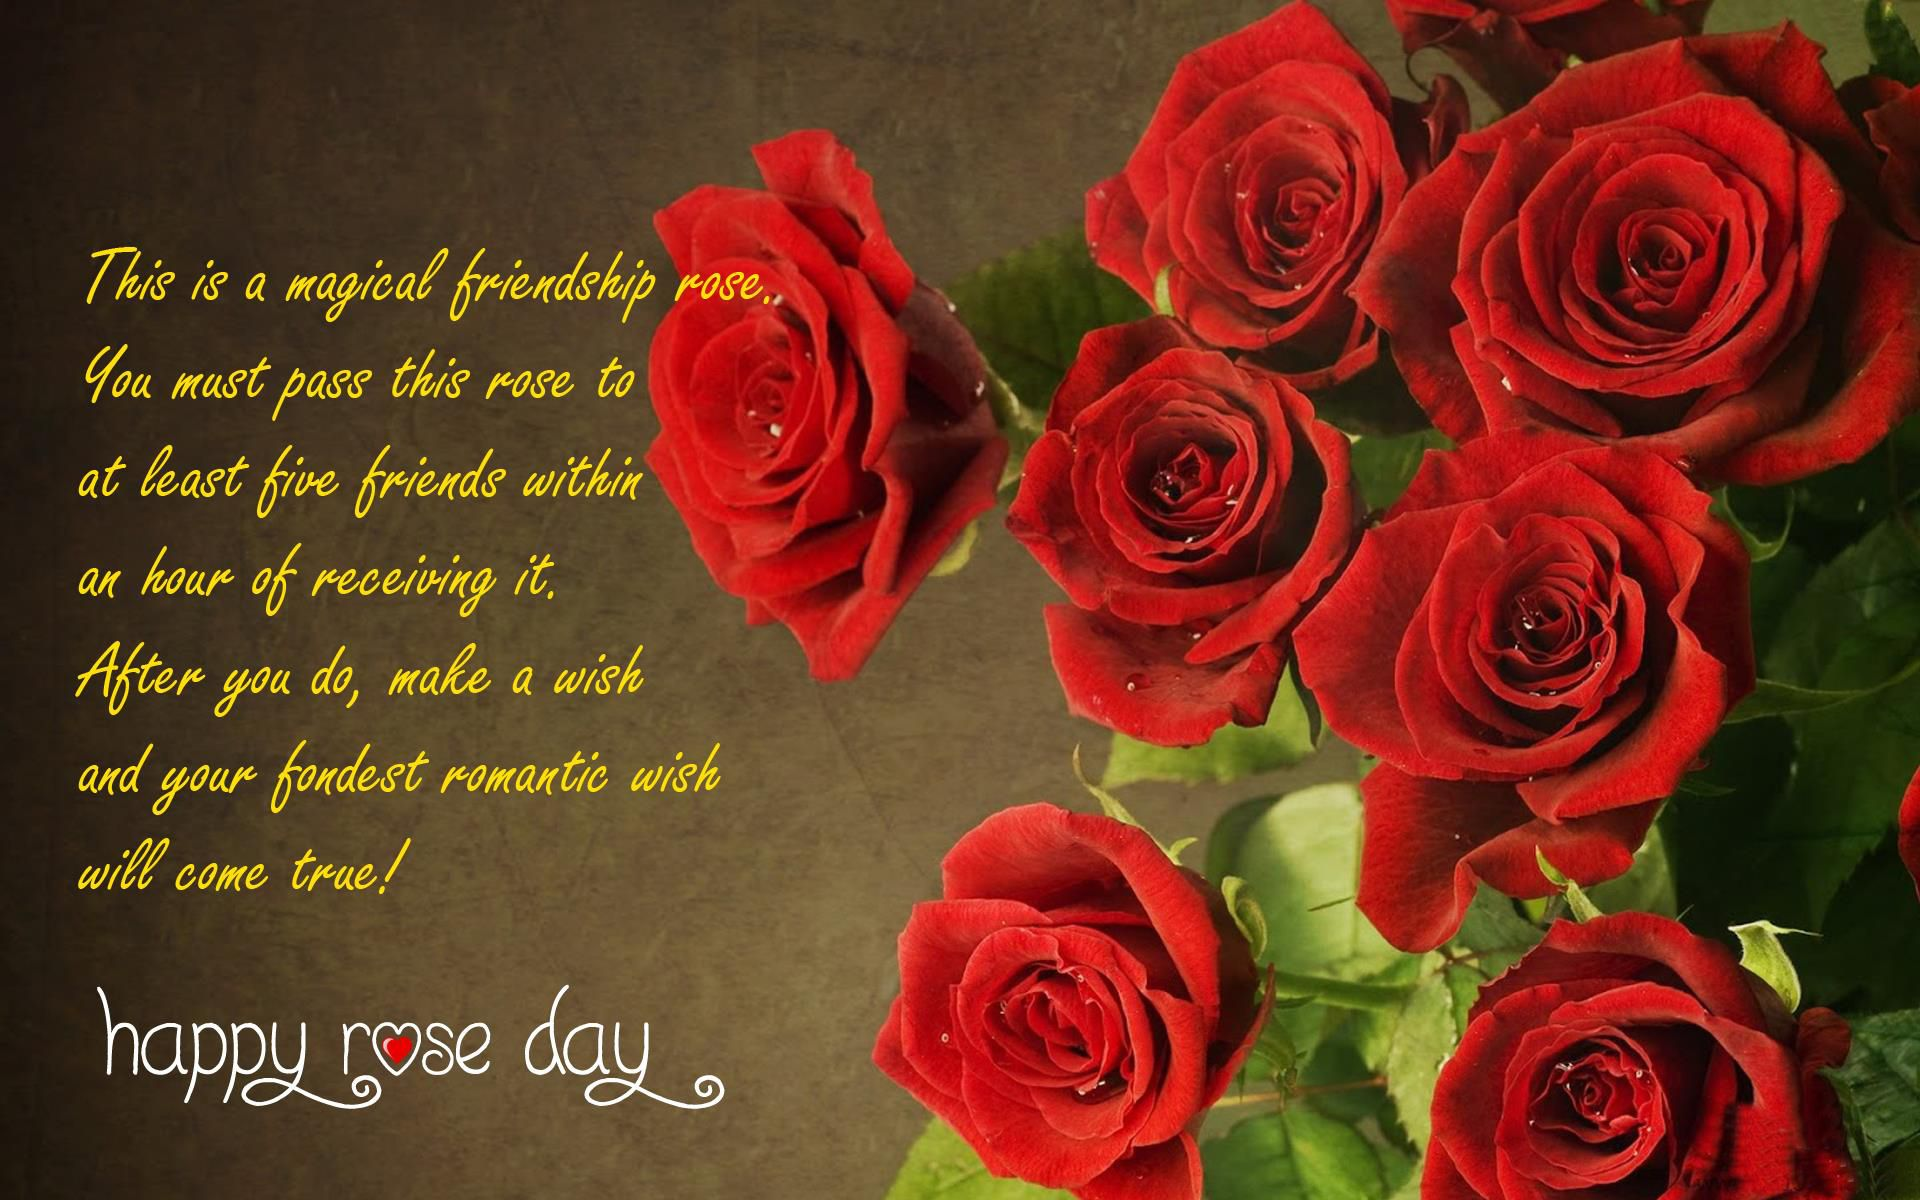 Rose Day Quotes For Friendship Rose Day Pinterest Day Happy